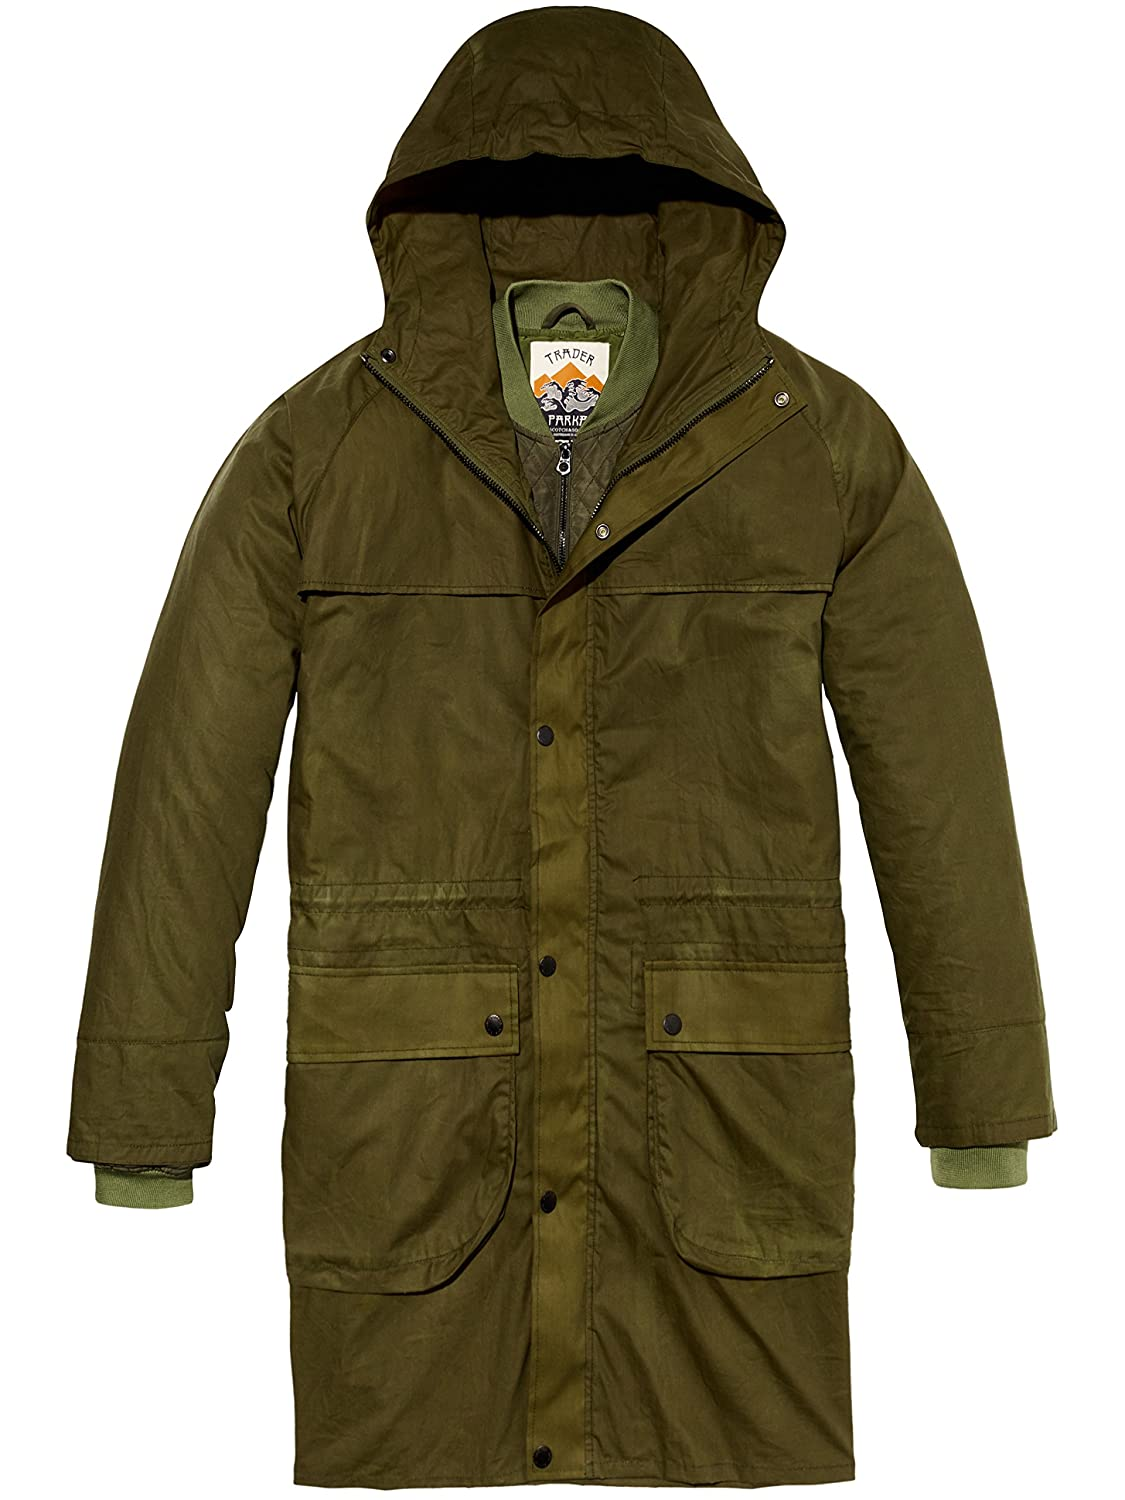 Scotch & Soda Washed Waxed Parka Jacket with Inside Bomber Layer, Hombre, Verde (Military Green 0j), X-Large: Amazon.es: Ropa y accesorios